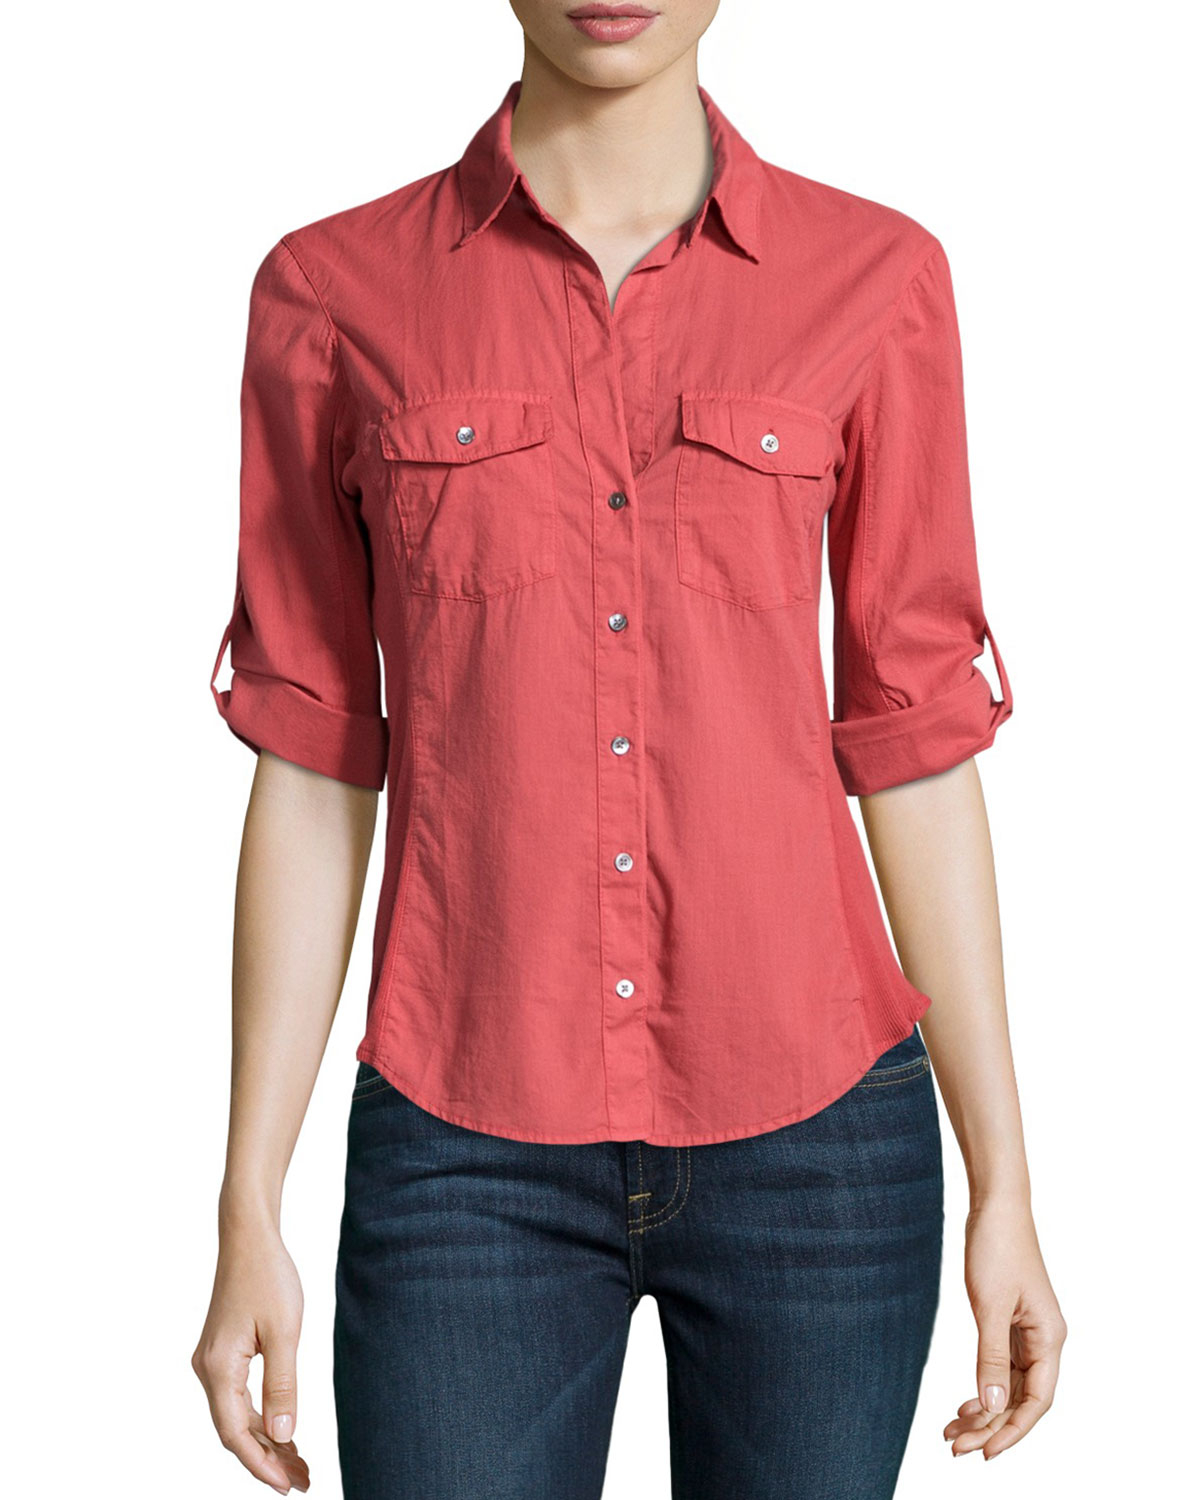 james perse cotton contrast panel shirt in red faded red